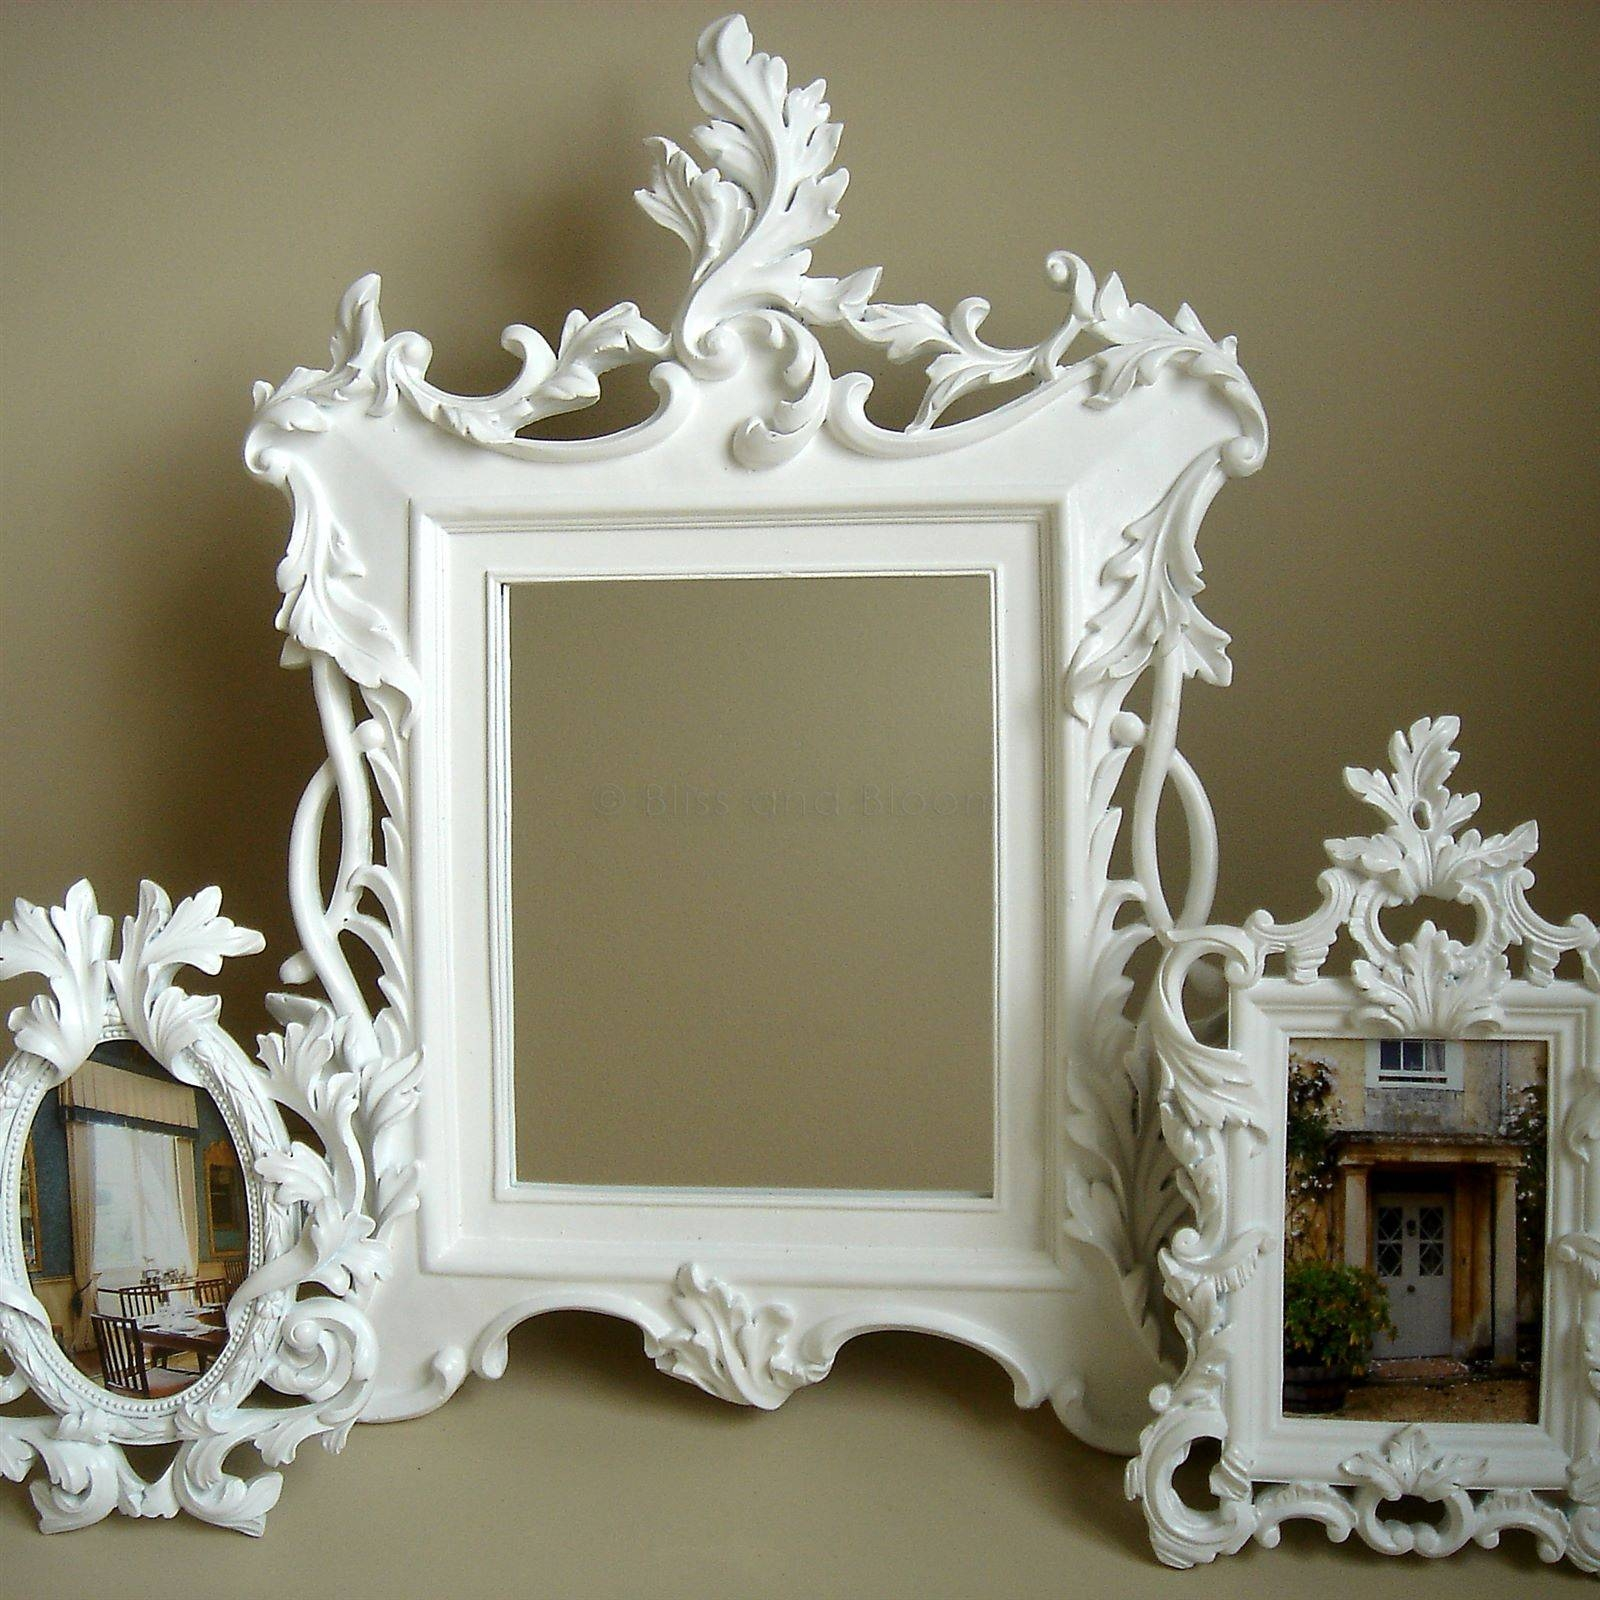 Bathroom: Astounding Baroque Mirror With Unique Frame For Bathroom In Baroque White Mirrors (View 9 of 25)